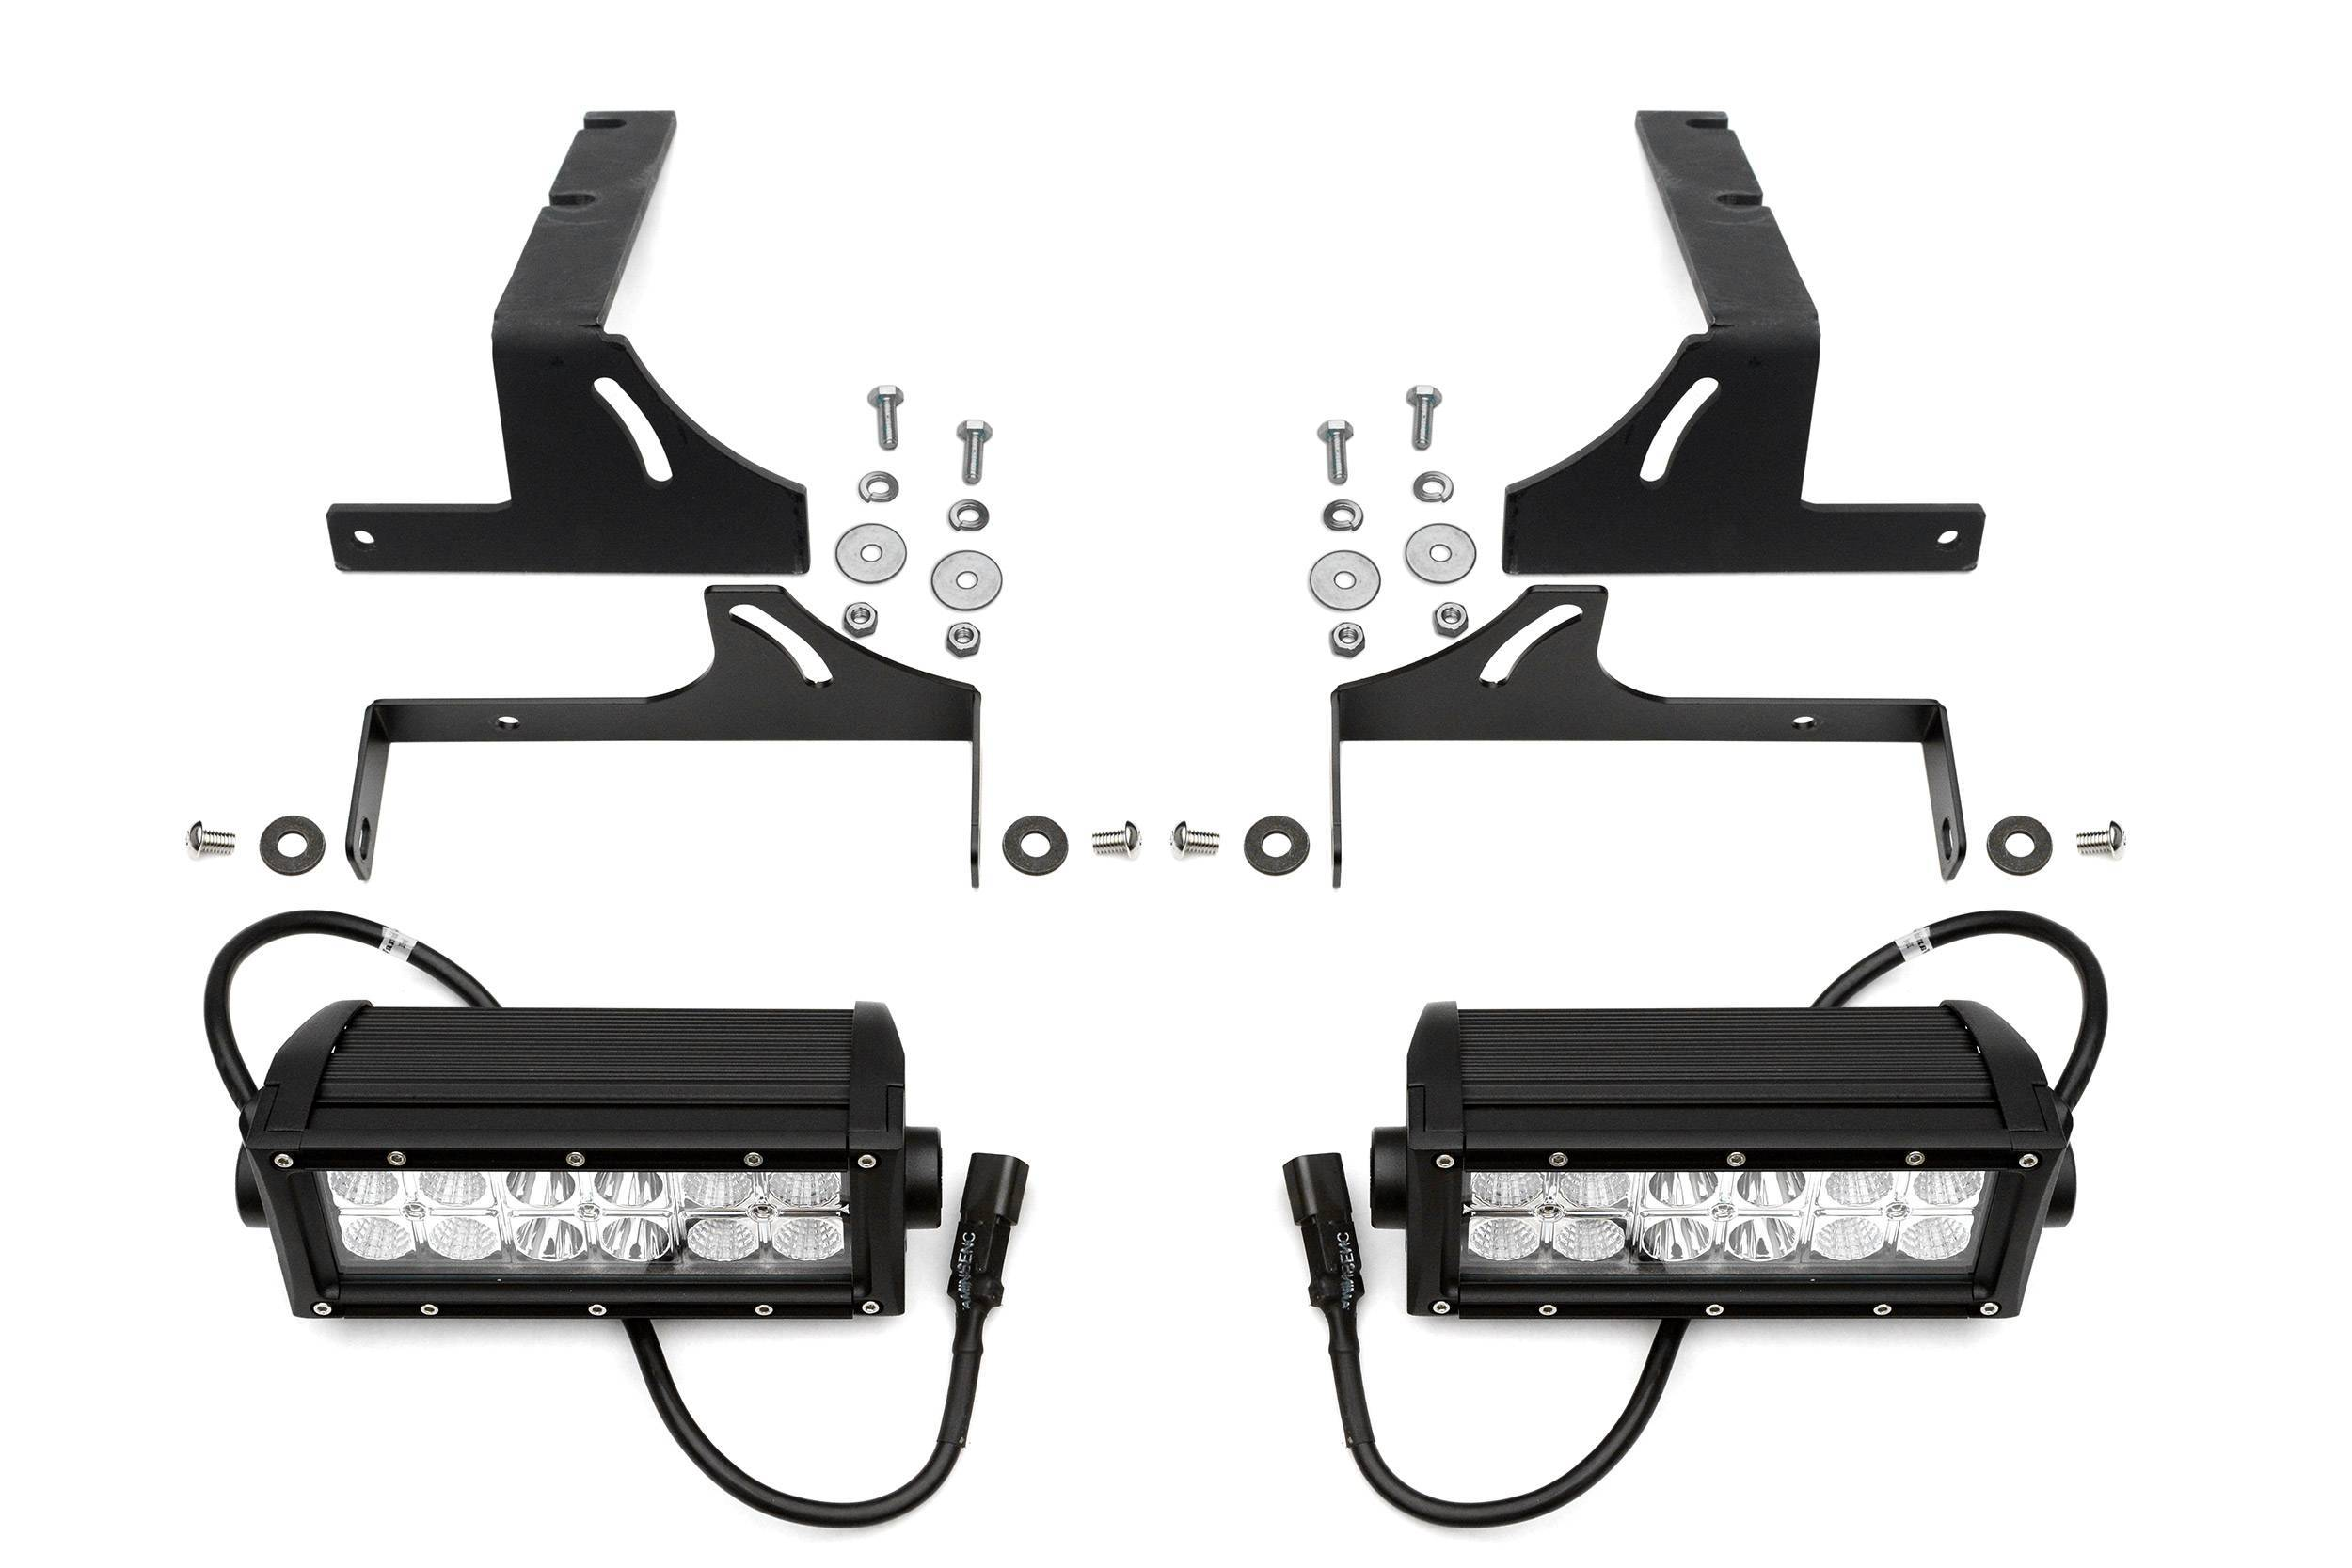 ZROADZ - 2015-2019 Silverado, Sierra HD Non-Diesel models - Rear Bumper LED Bracket to mount (2) 6 Inch Straight Light Bar - PN #Z381221